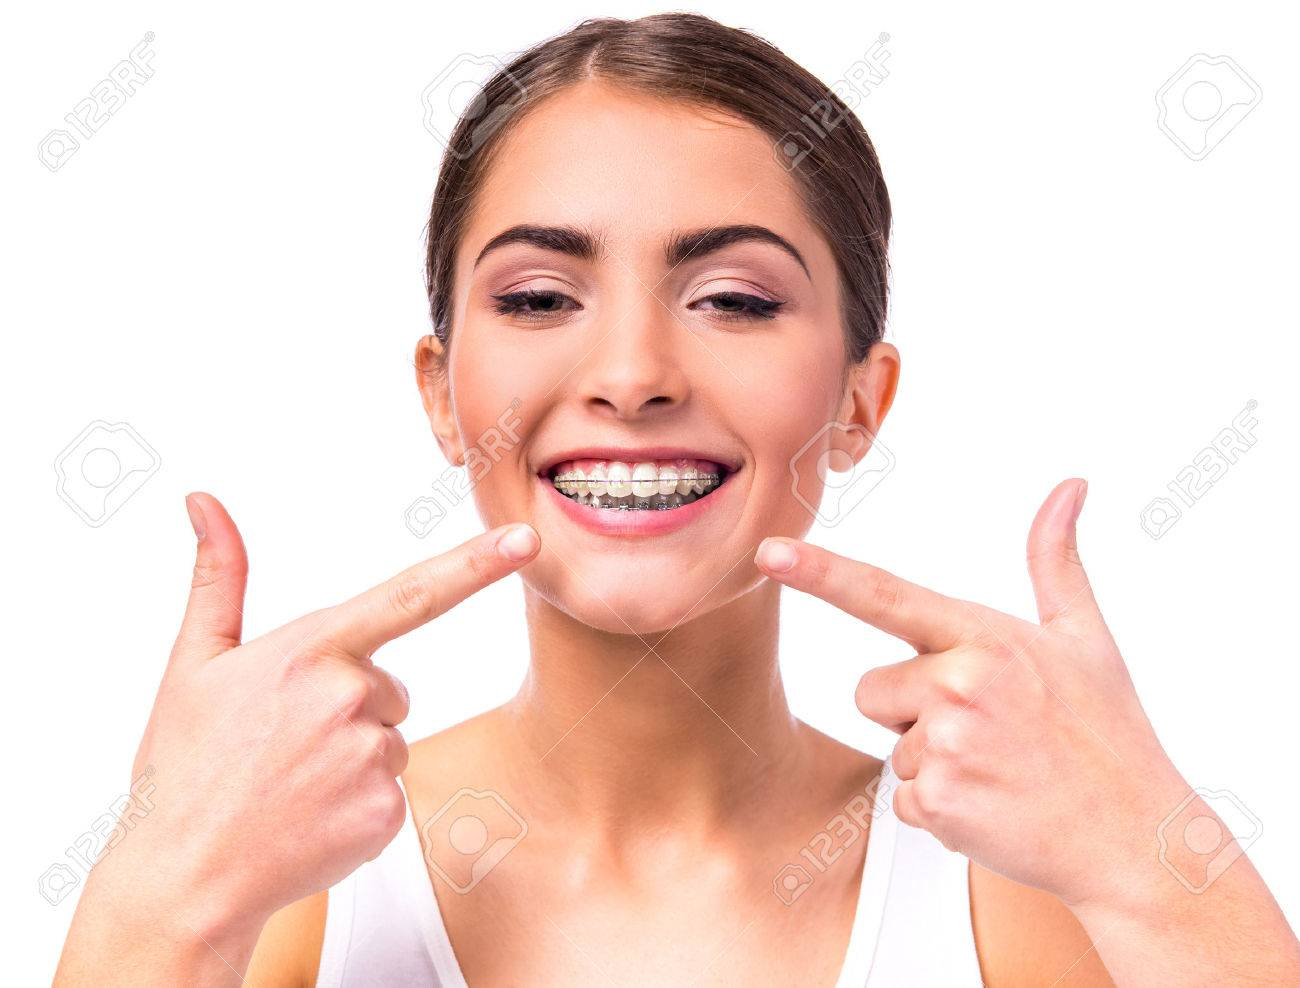 Portrait of a beautiful woman with braces on teeth, isolated on a white background Standard-Bild - 47178997